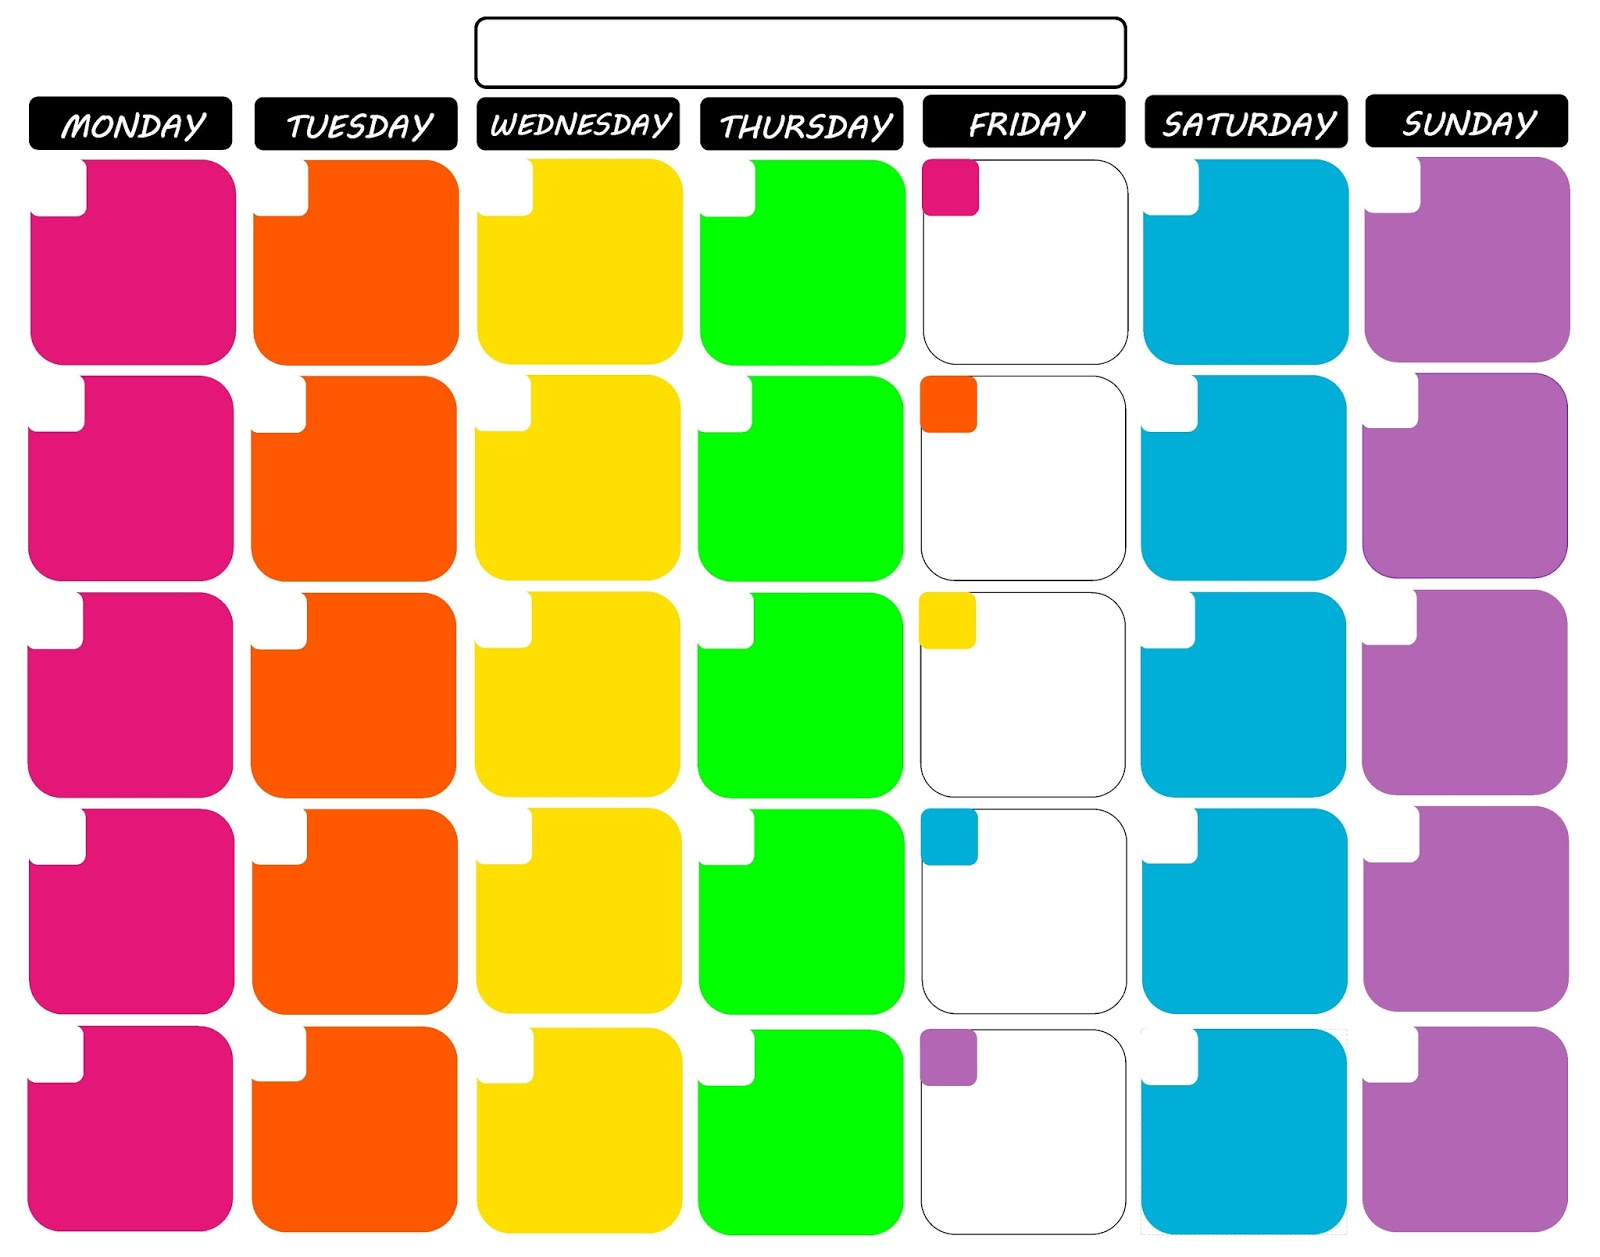 Blank Calendar Colorful : Koolbeenz my free printable calendar quot x tropical